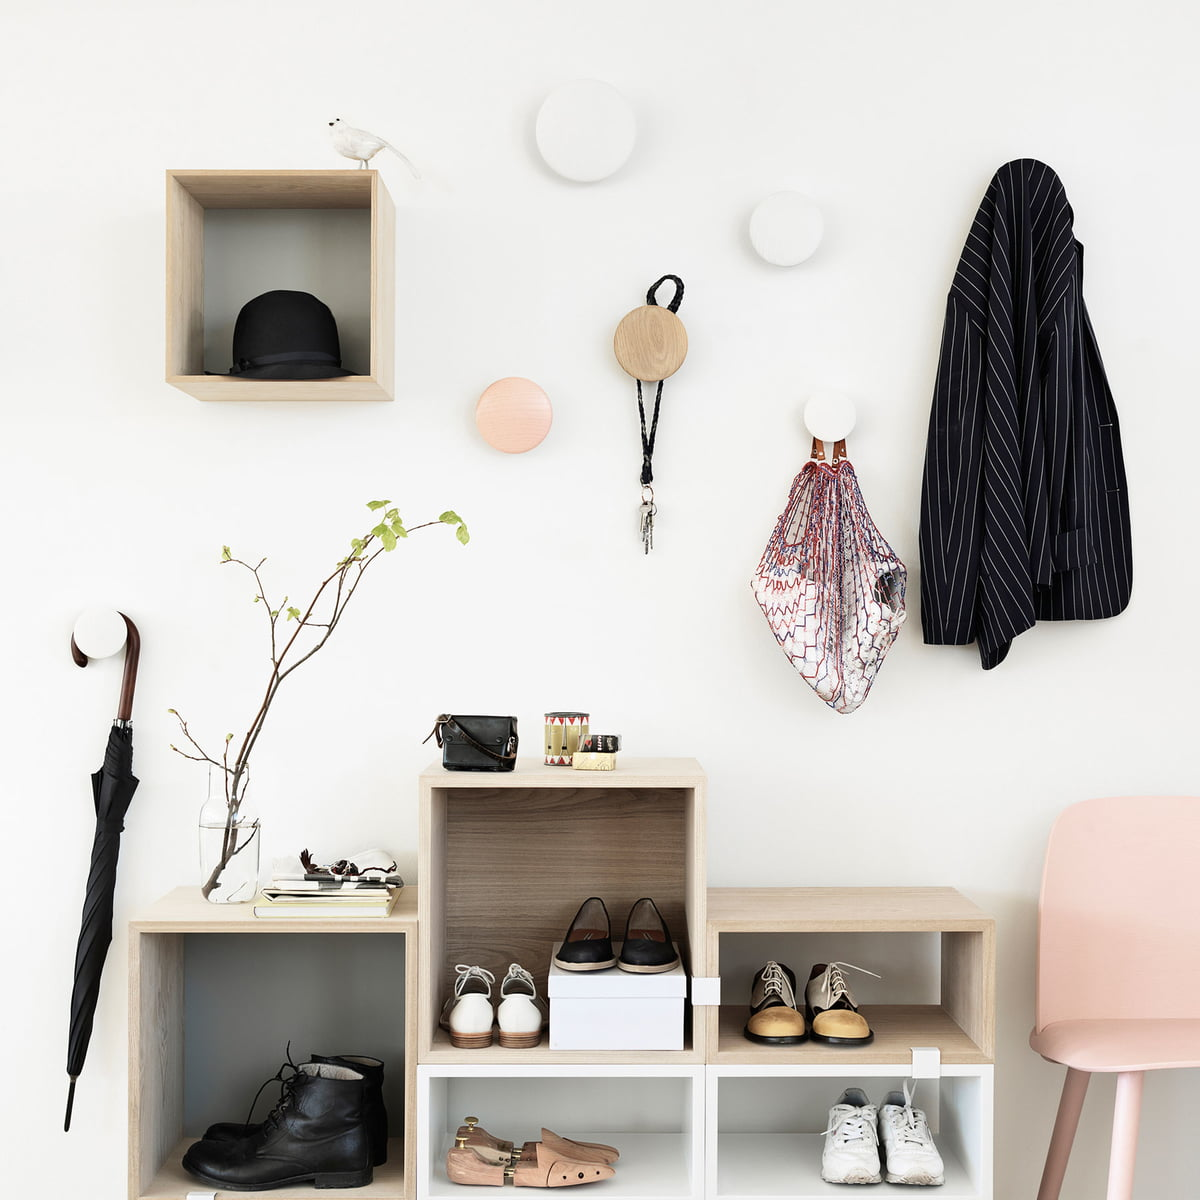 wandhaken sets the dots von muuto im shop. Black Bedroom Furniture Sets. Home Design Ideas